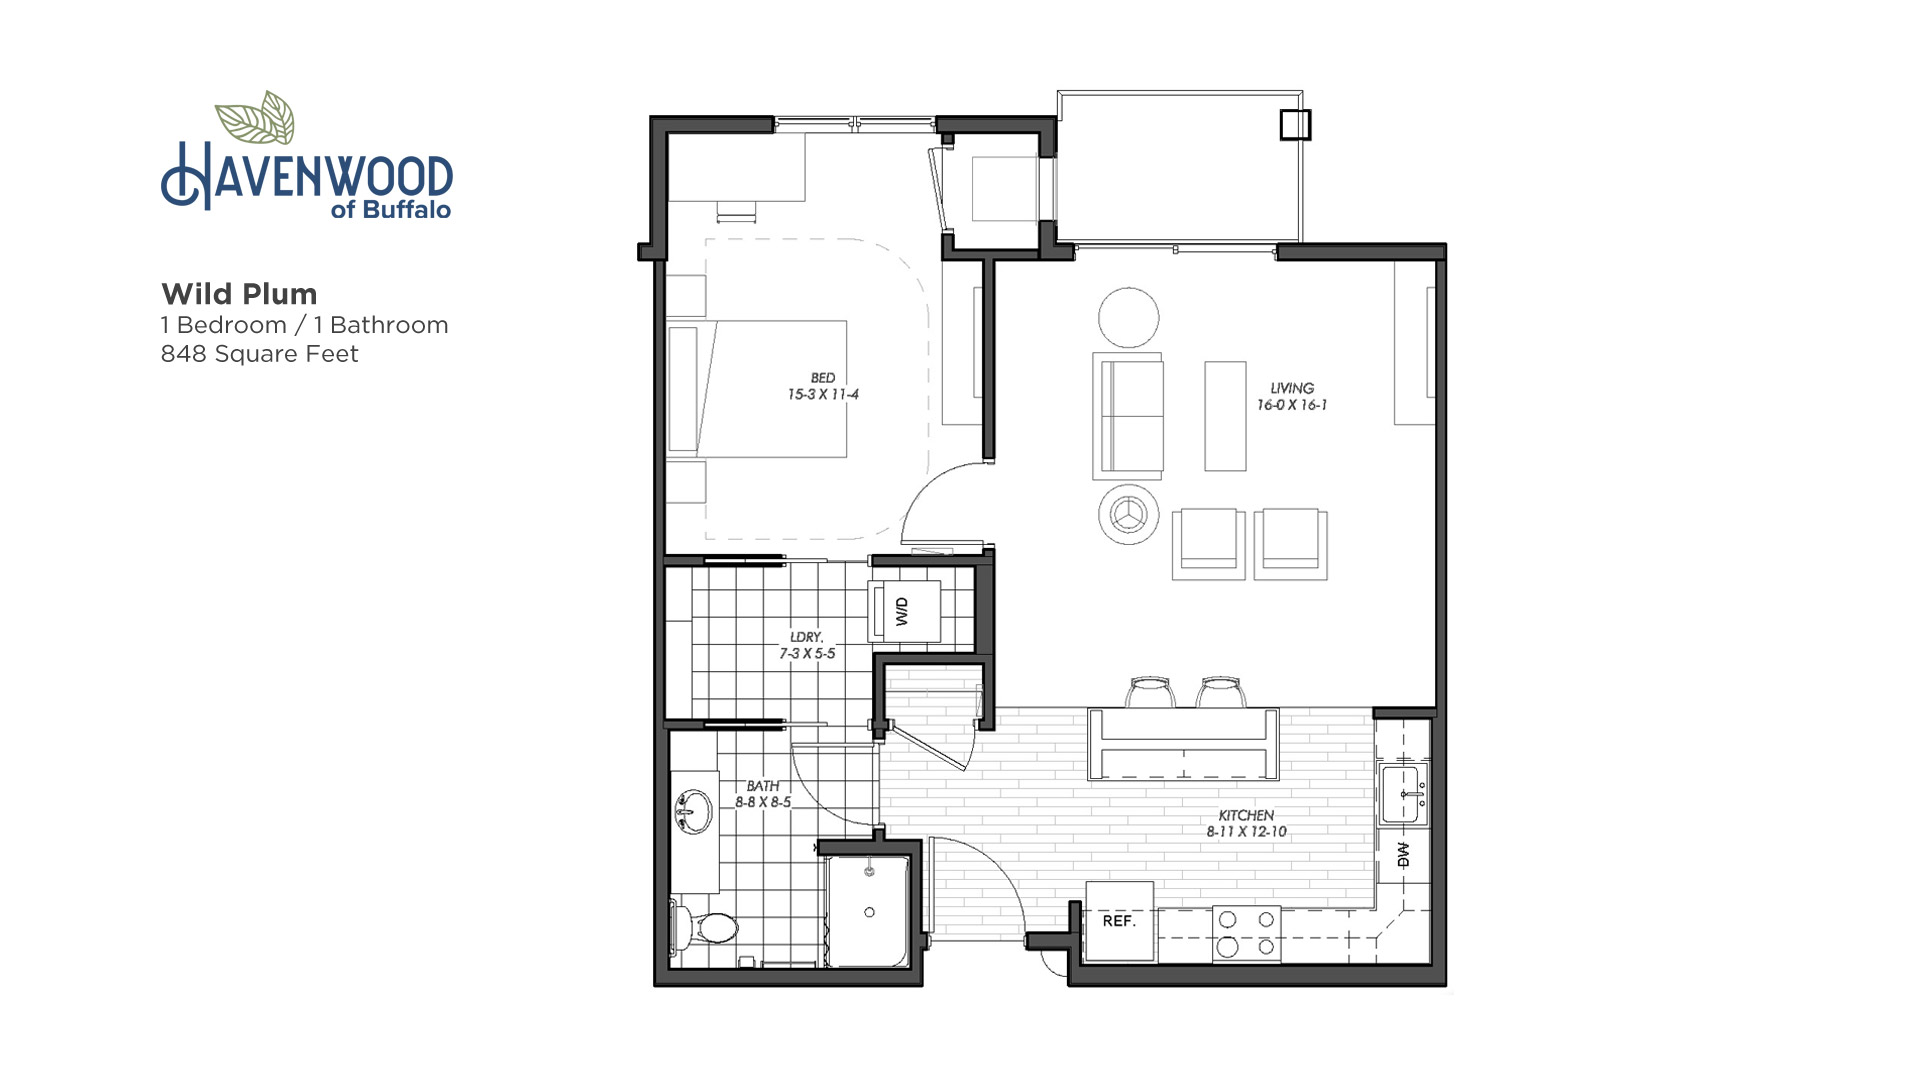 Havenwood of Buffalo Wild Plum Floor Plan